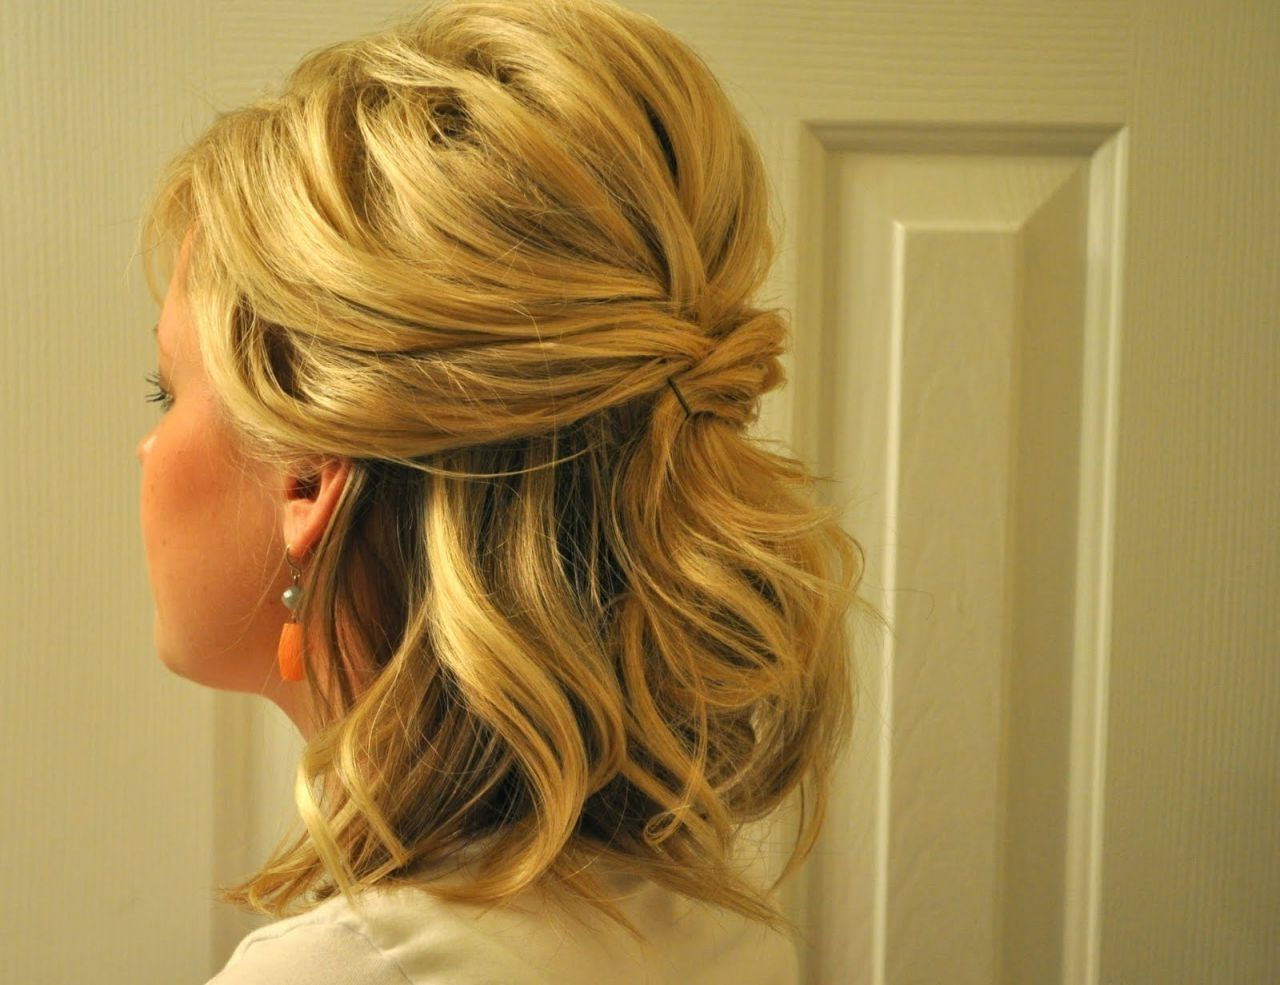 Half Up Half Down Wedding Hairstyles For Medium Length Hair Intended For Most Up To Date Half Long Half Medium Hairstyles (View 16 of 20)